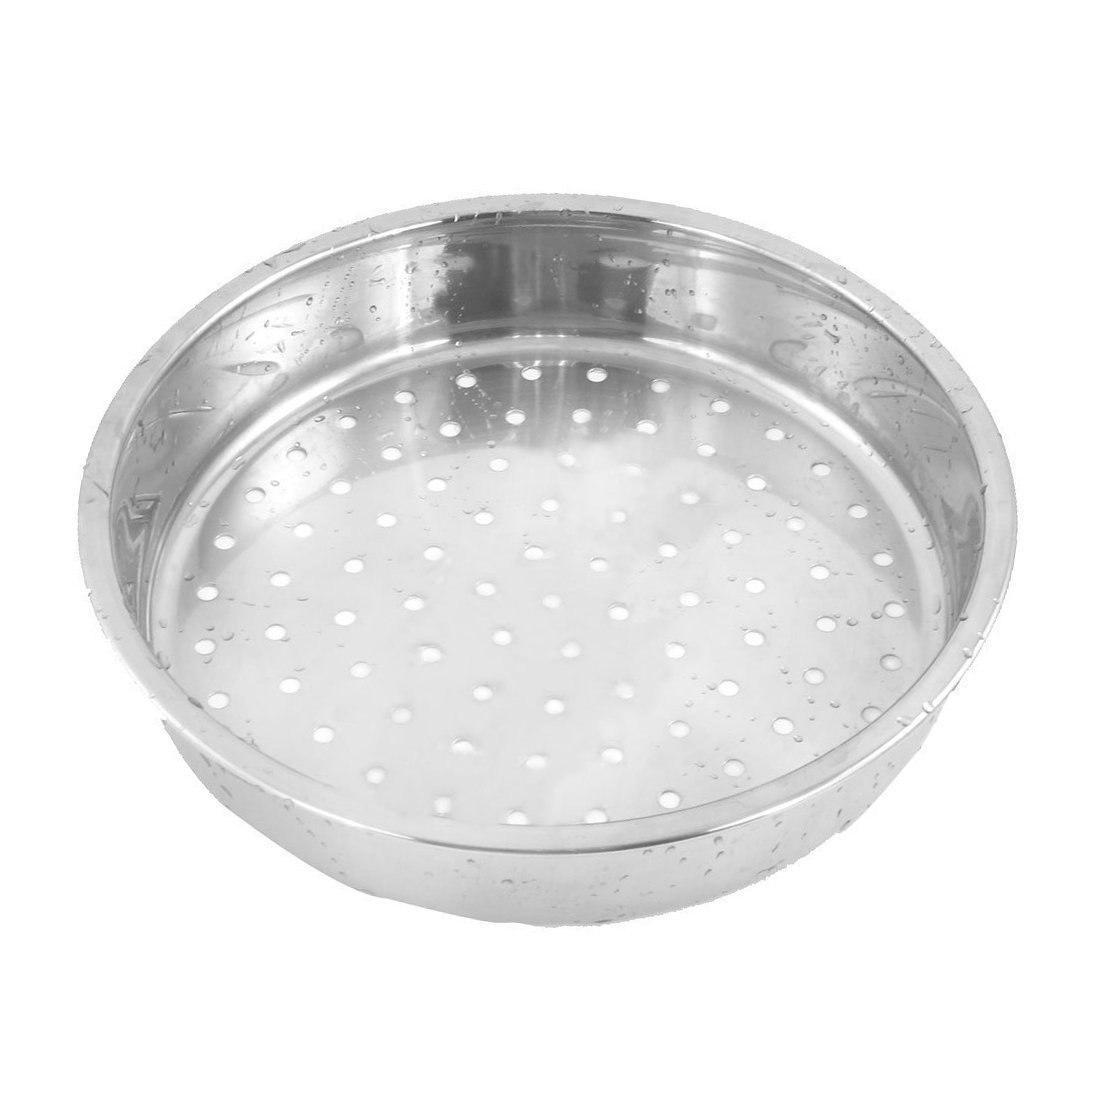 Steamer Rack - SODIAL(R) Round Stainless Steel Food Cooking Steamer Rack Cookware 21cm Dia LEPEA528